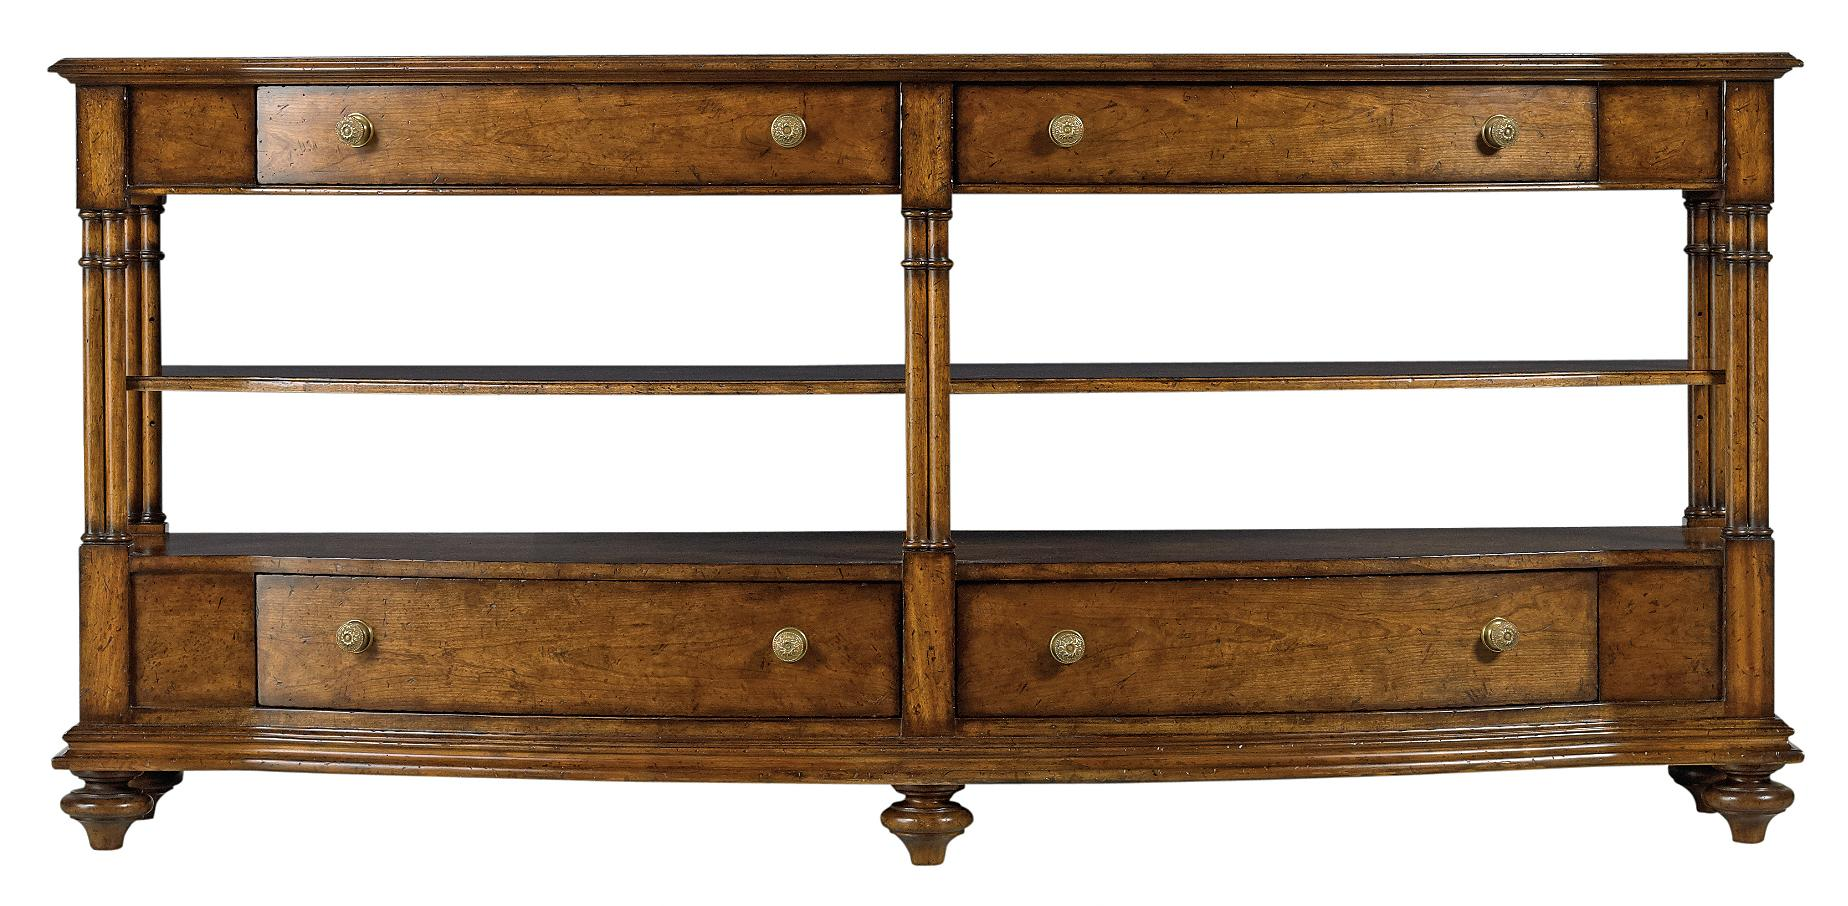 Stanley Furniture Arrondissement Rond Media Console - Item Number: 222-15-30